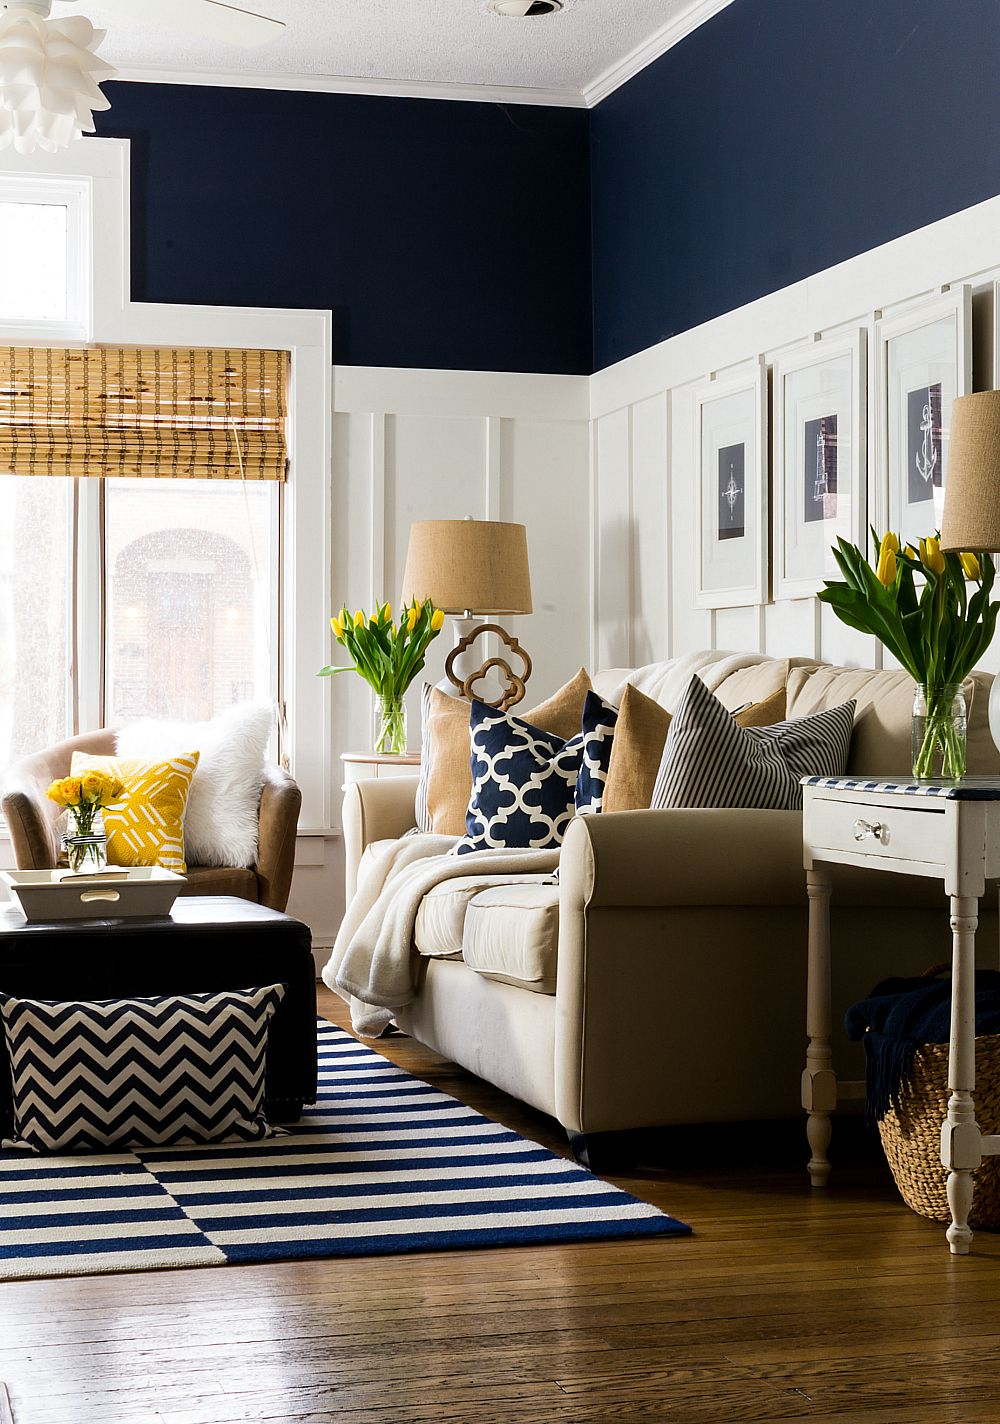 Interior Design Living Room Colors Spring Decor Ideas In Navy And Yellow The White Spring And